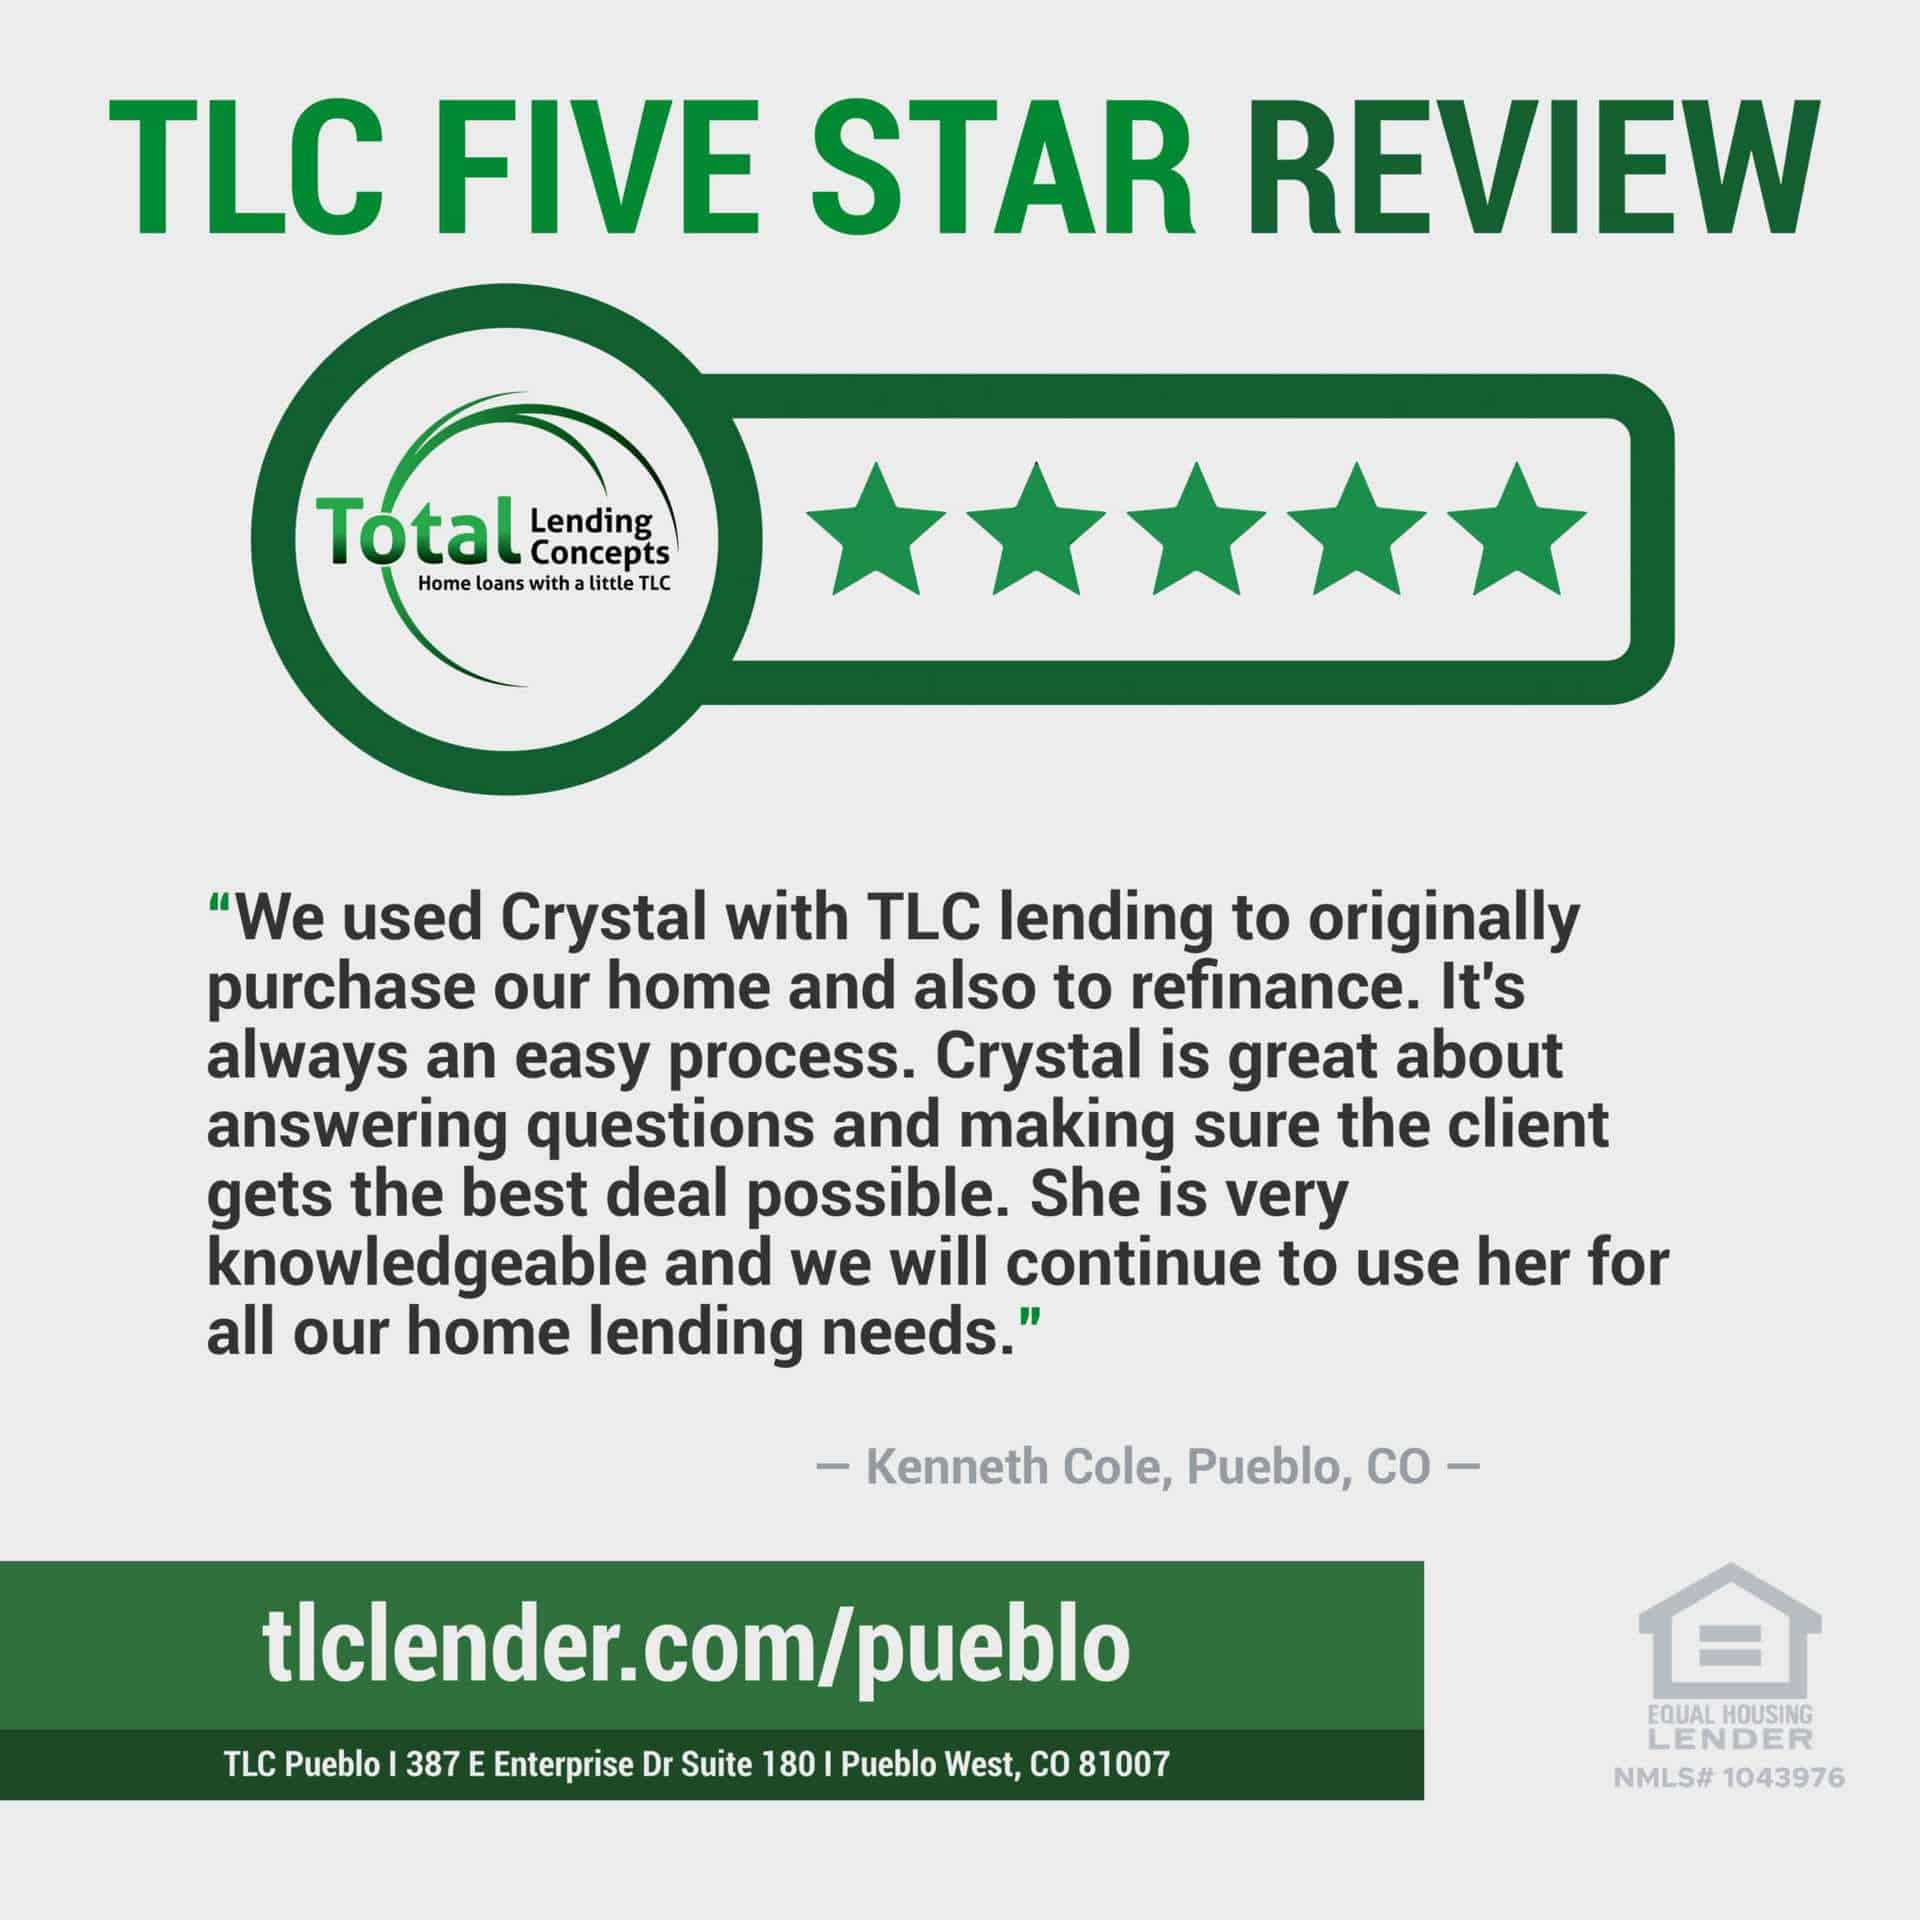 Total Lending Concepts Five Star Review Kenneth Cole in Pueblo West Columbia for Crystal Home Loan